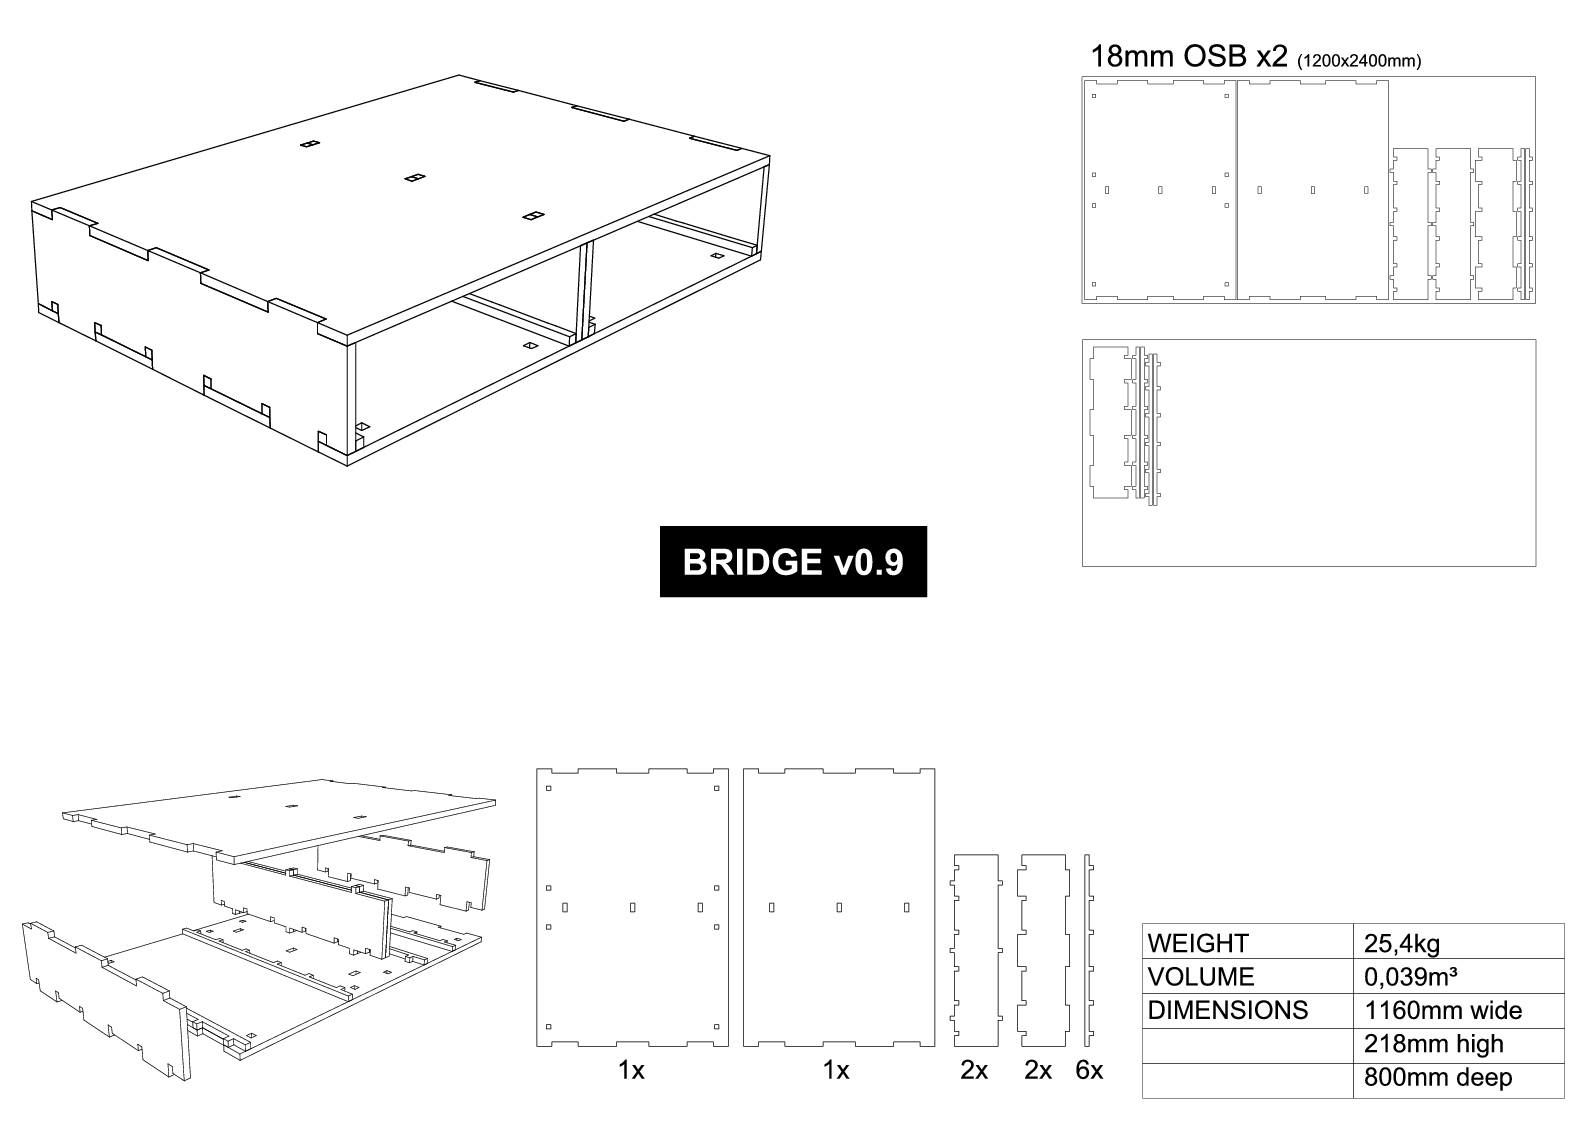 Bridge assembly drawing